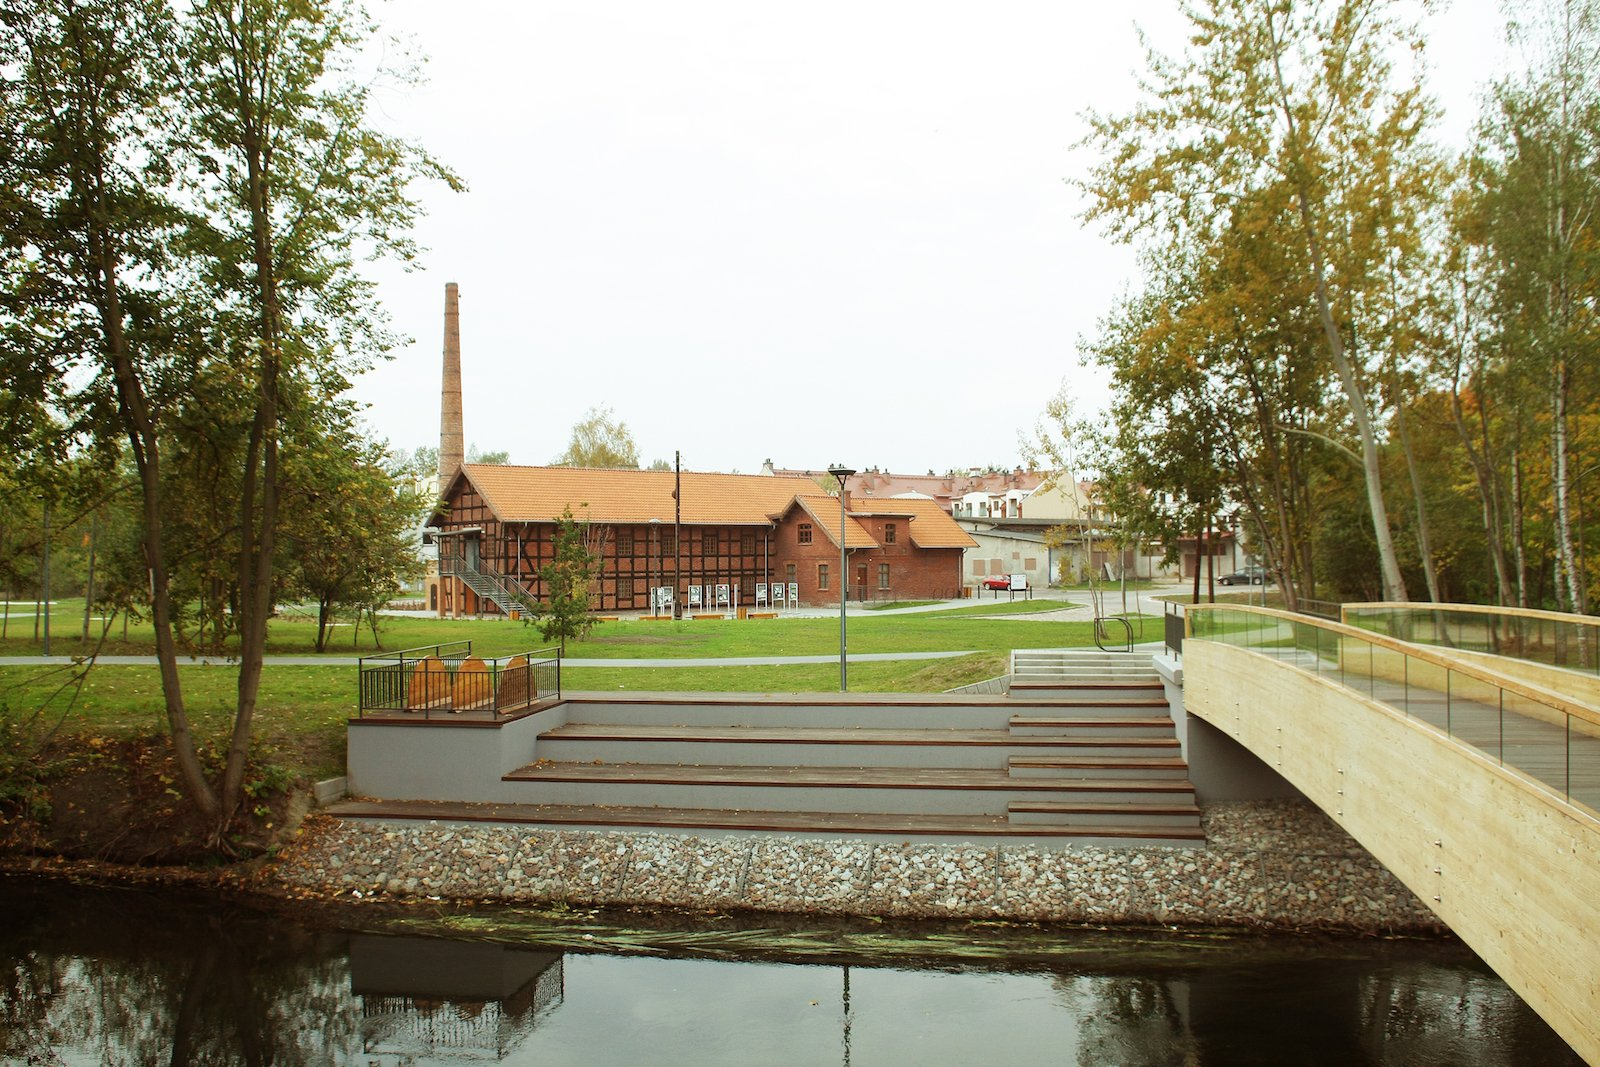 Letter from Olsztyn: the curious, complexhistory of a German-Polish border town